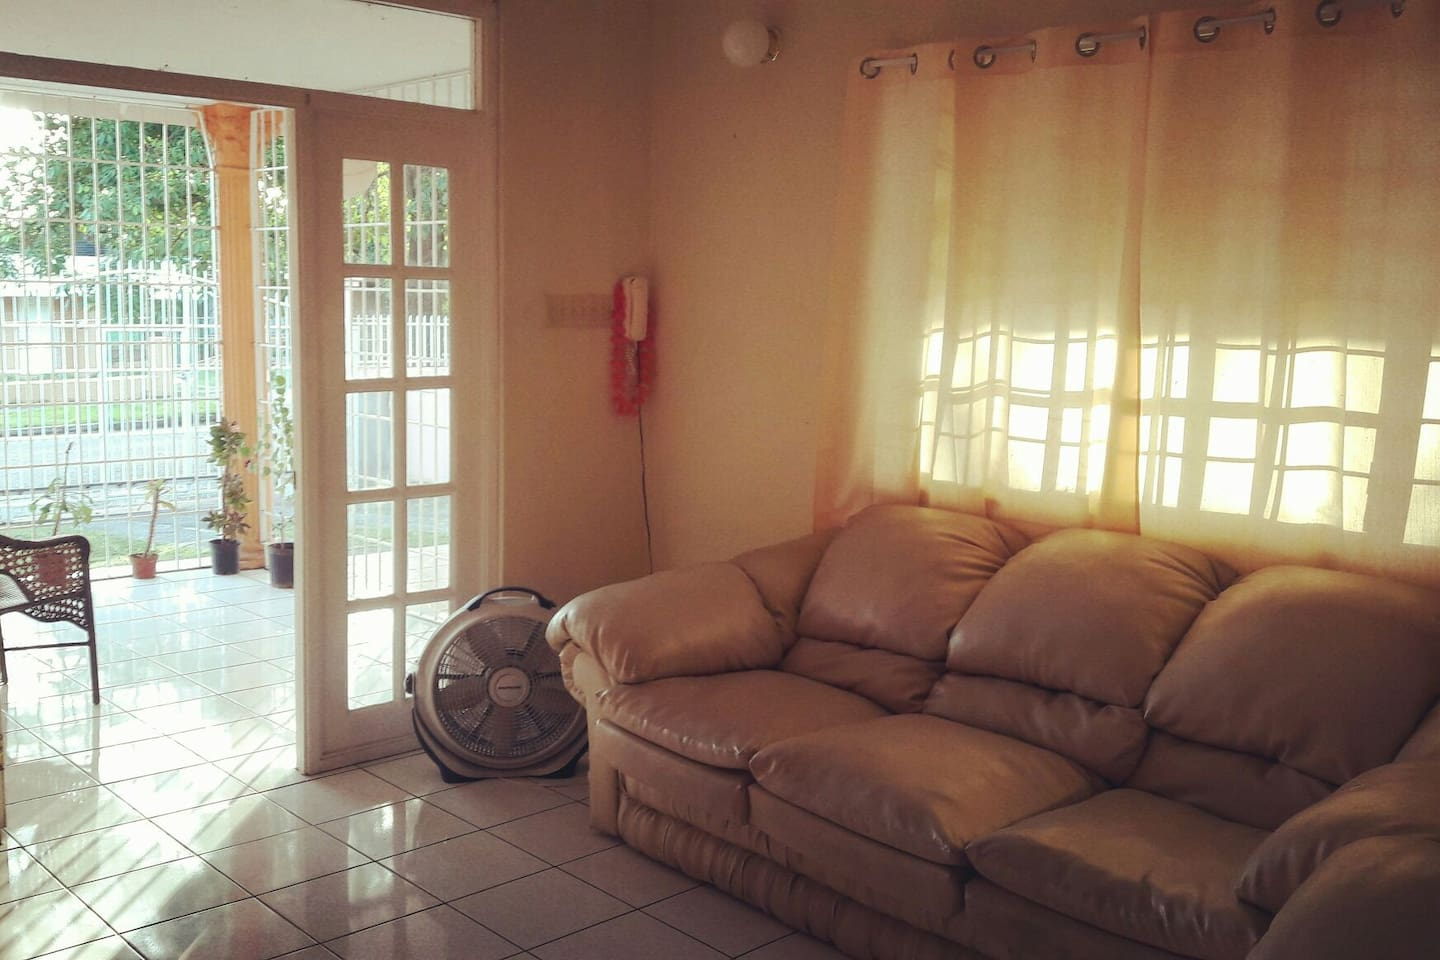 UNIVERSITY area & close to Bob Marley Museum - Houses for Rent in ...